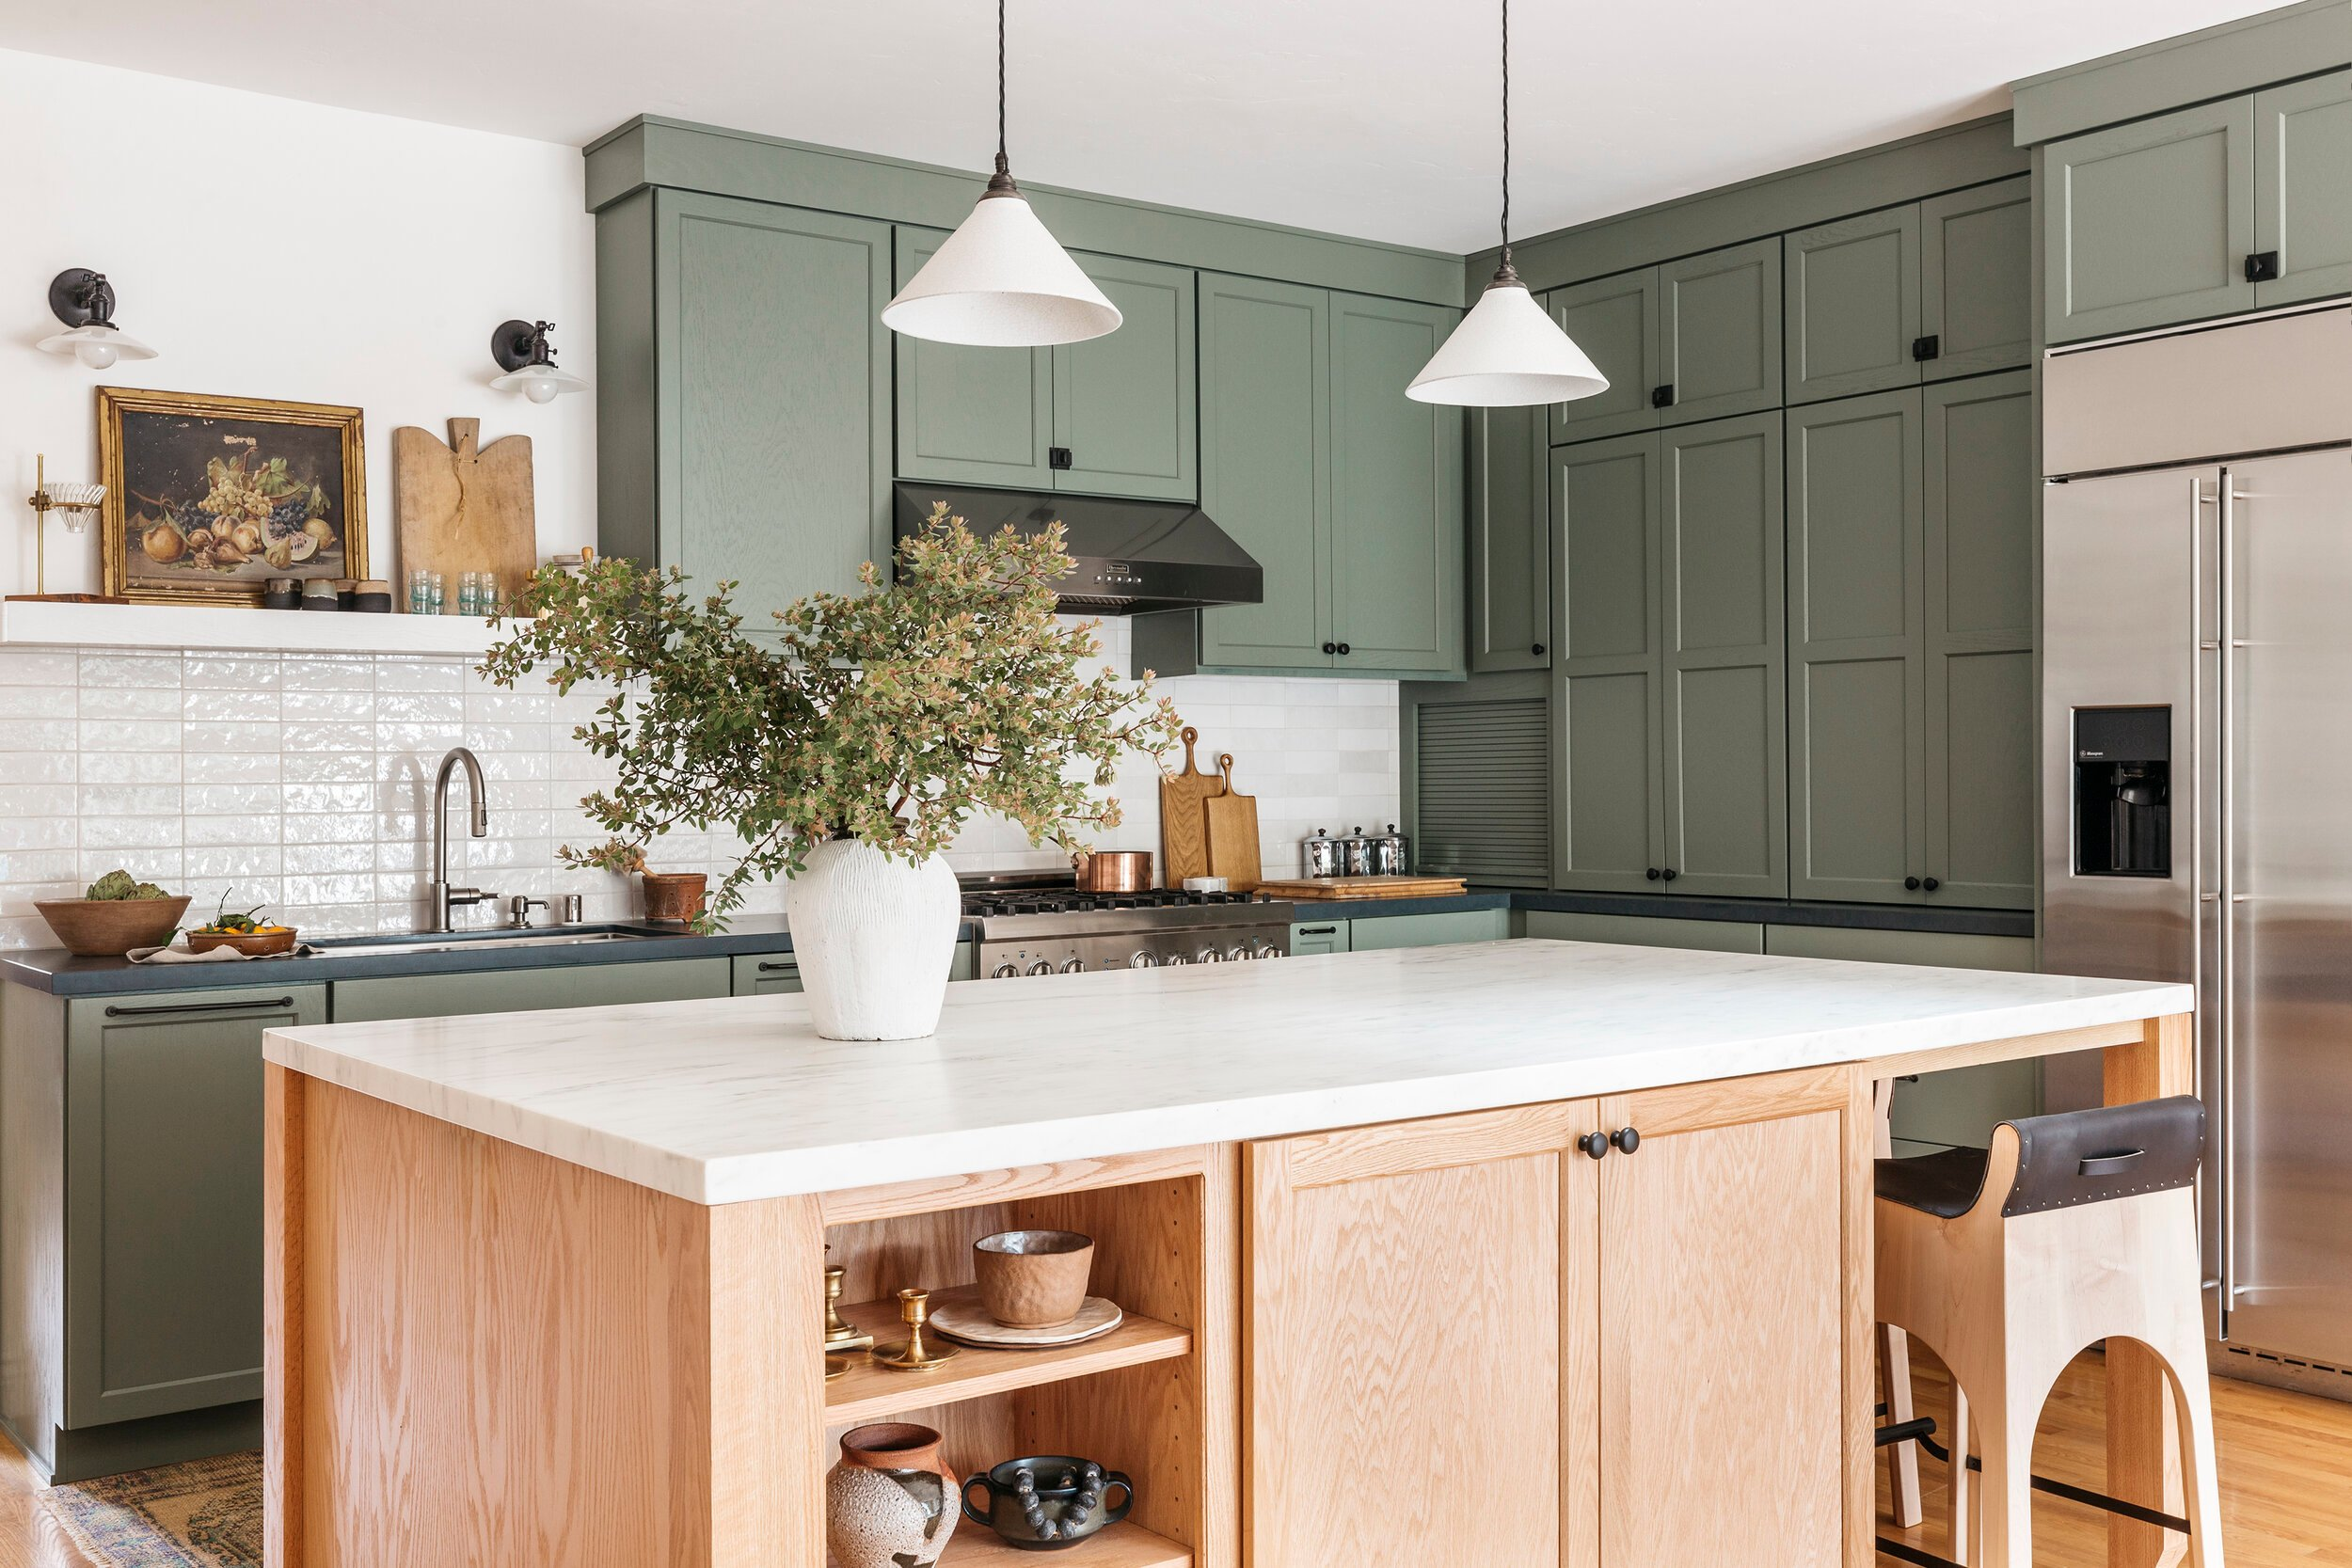 The Green Kitchens You Absolutely Loved (And We Did Too) - Bobby Berk